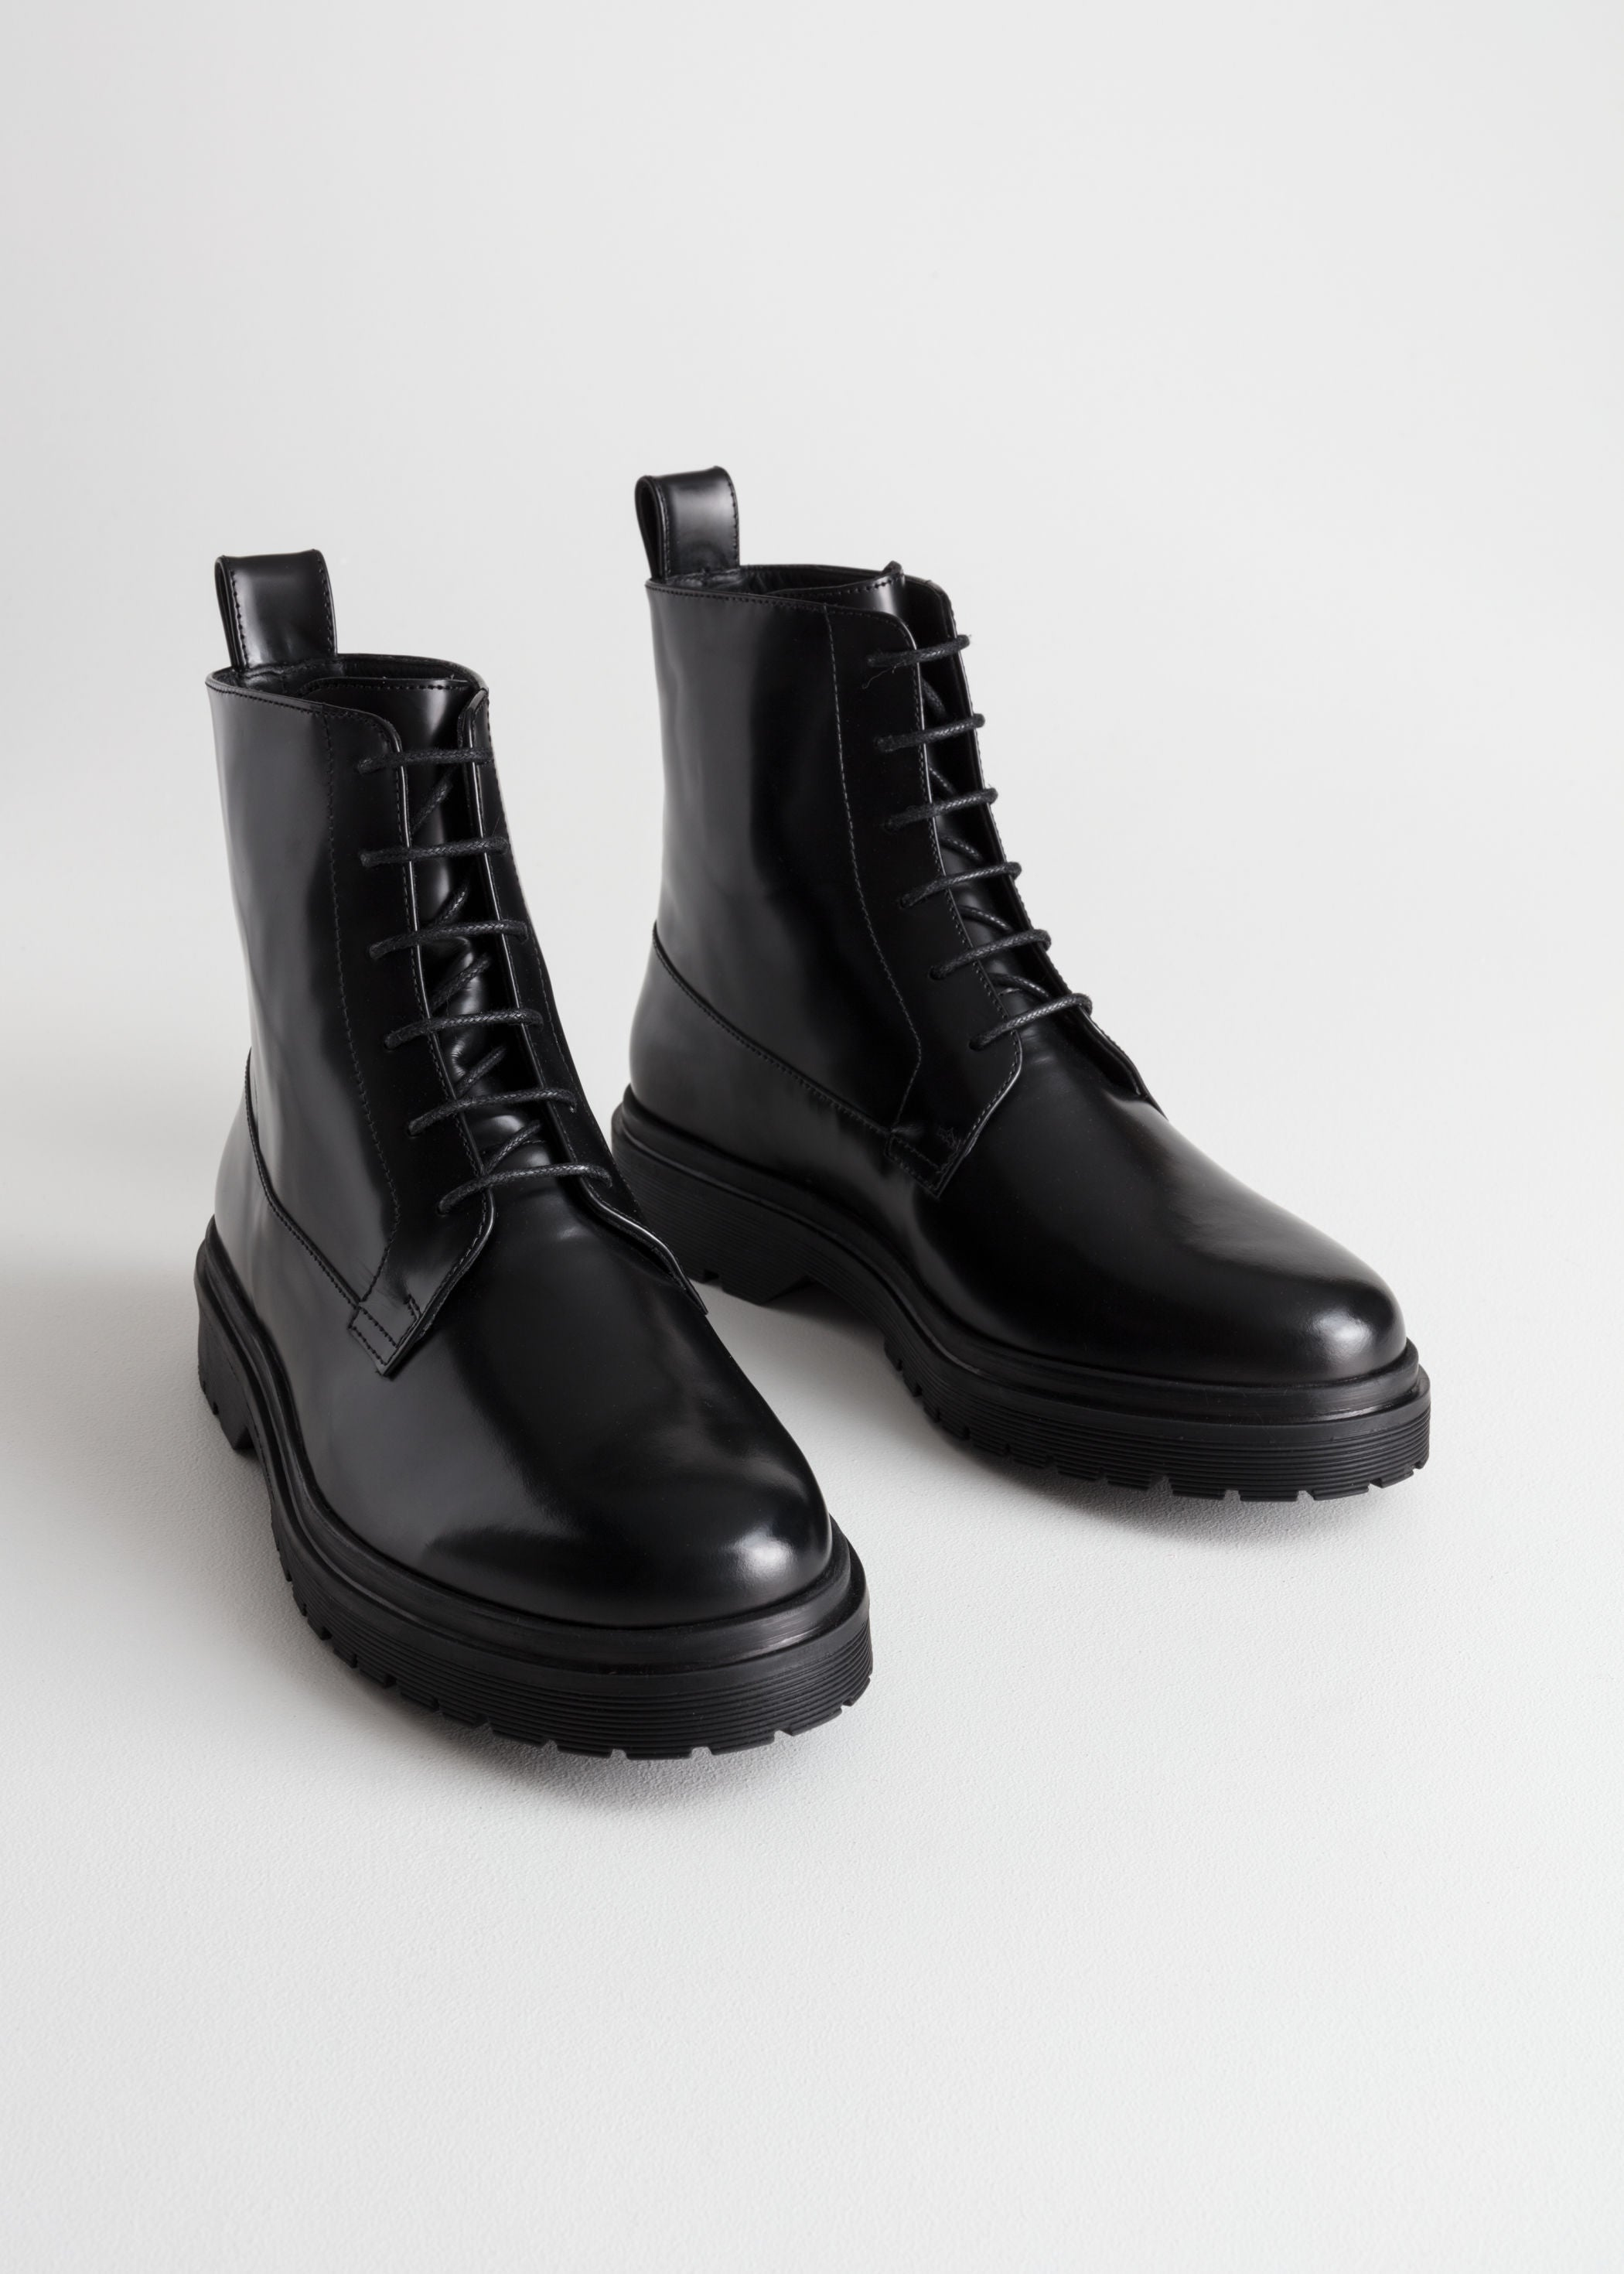 \u0026amp; Other Stories + Lace-Up Leather Boots